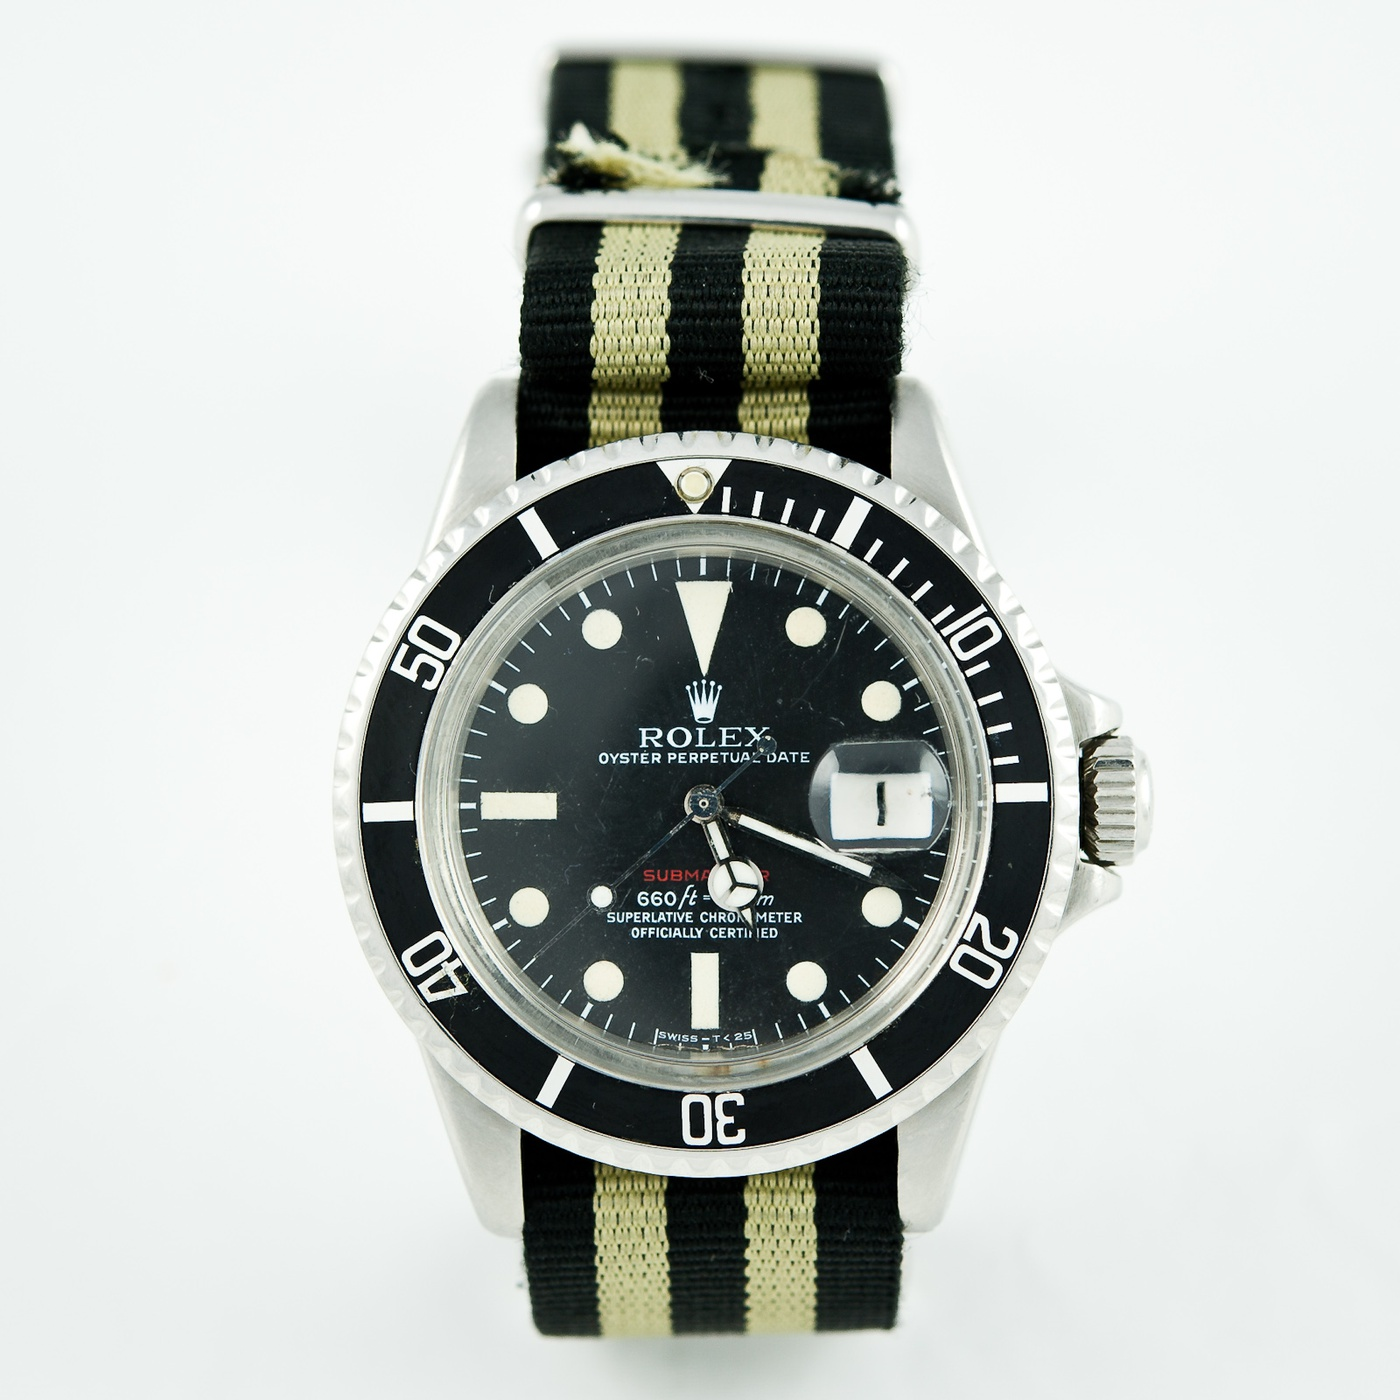 Mid-70s 1680 Rolex Submariner nyc